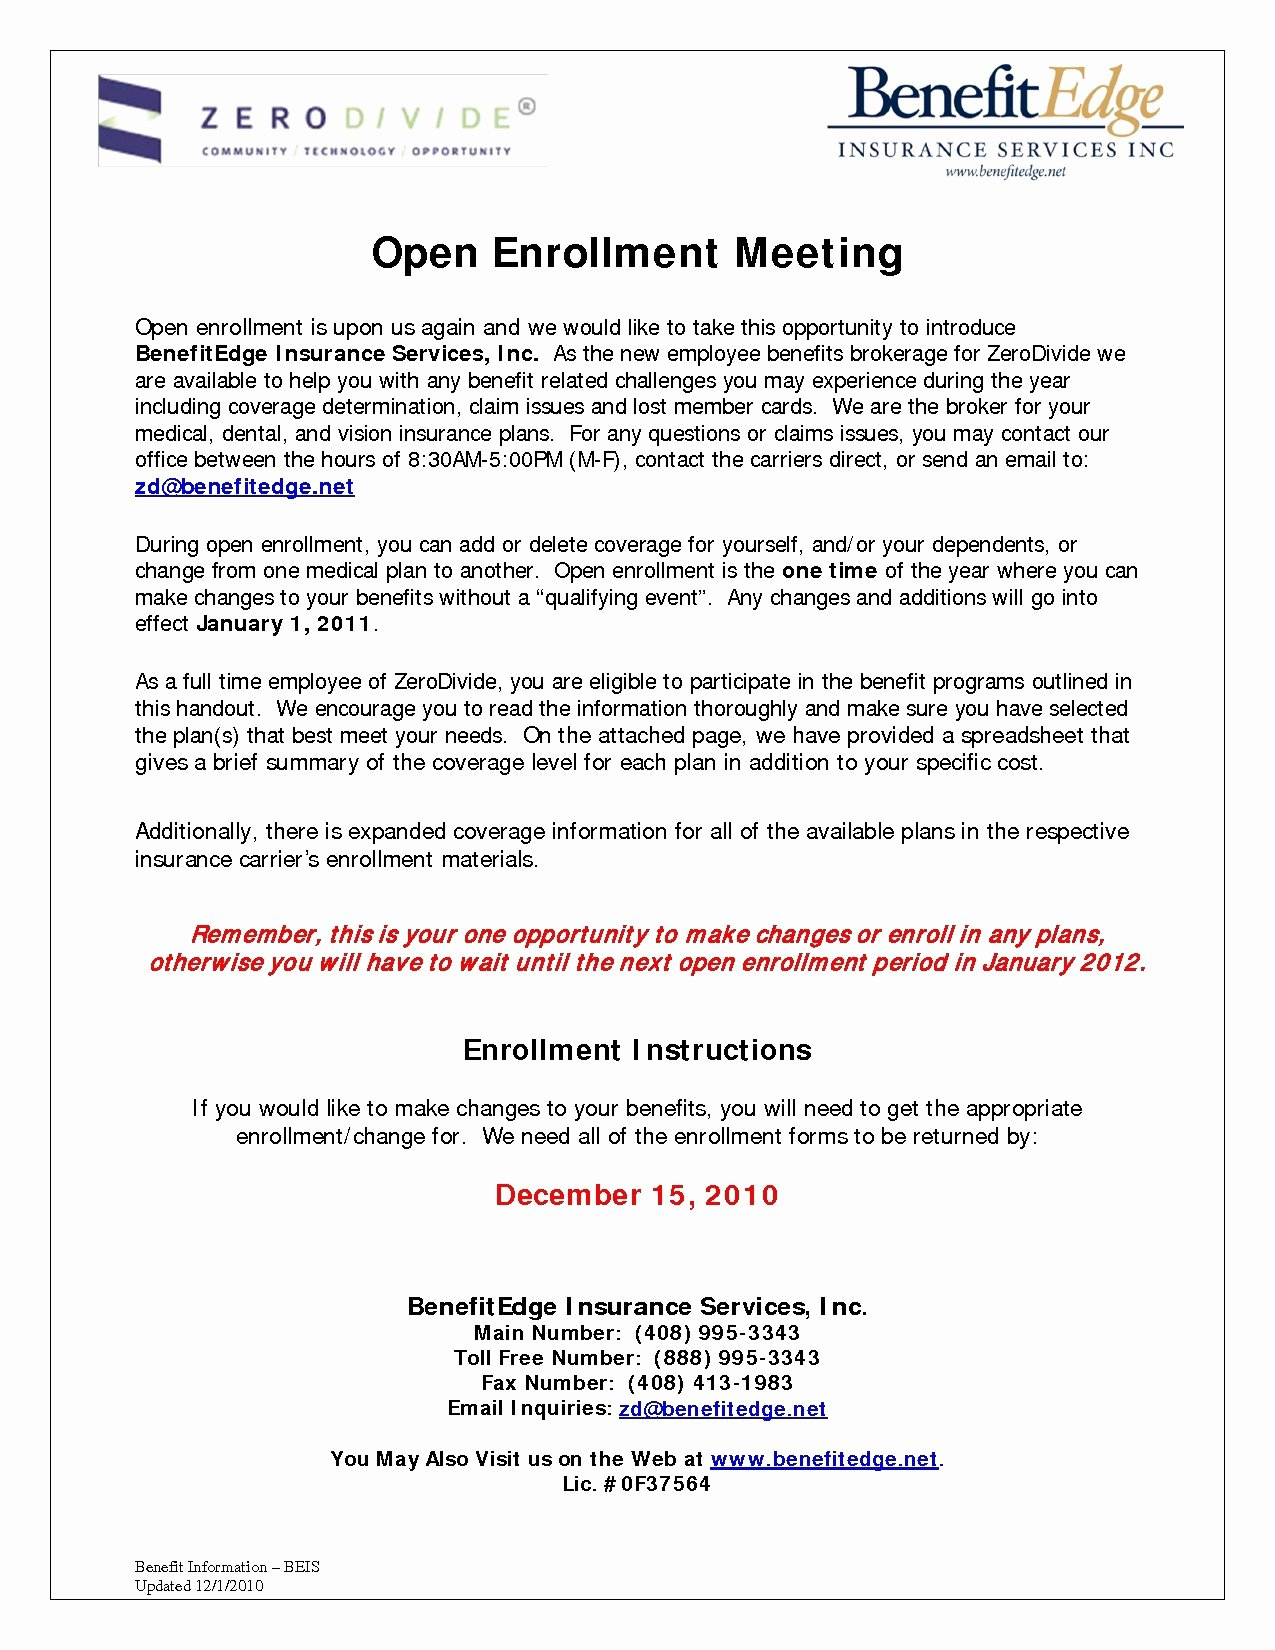 Sample Open Enrollment Letter to Employees Beautiful Open Enrollment Template Letter Download